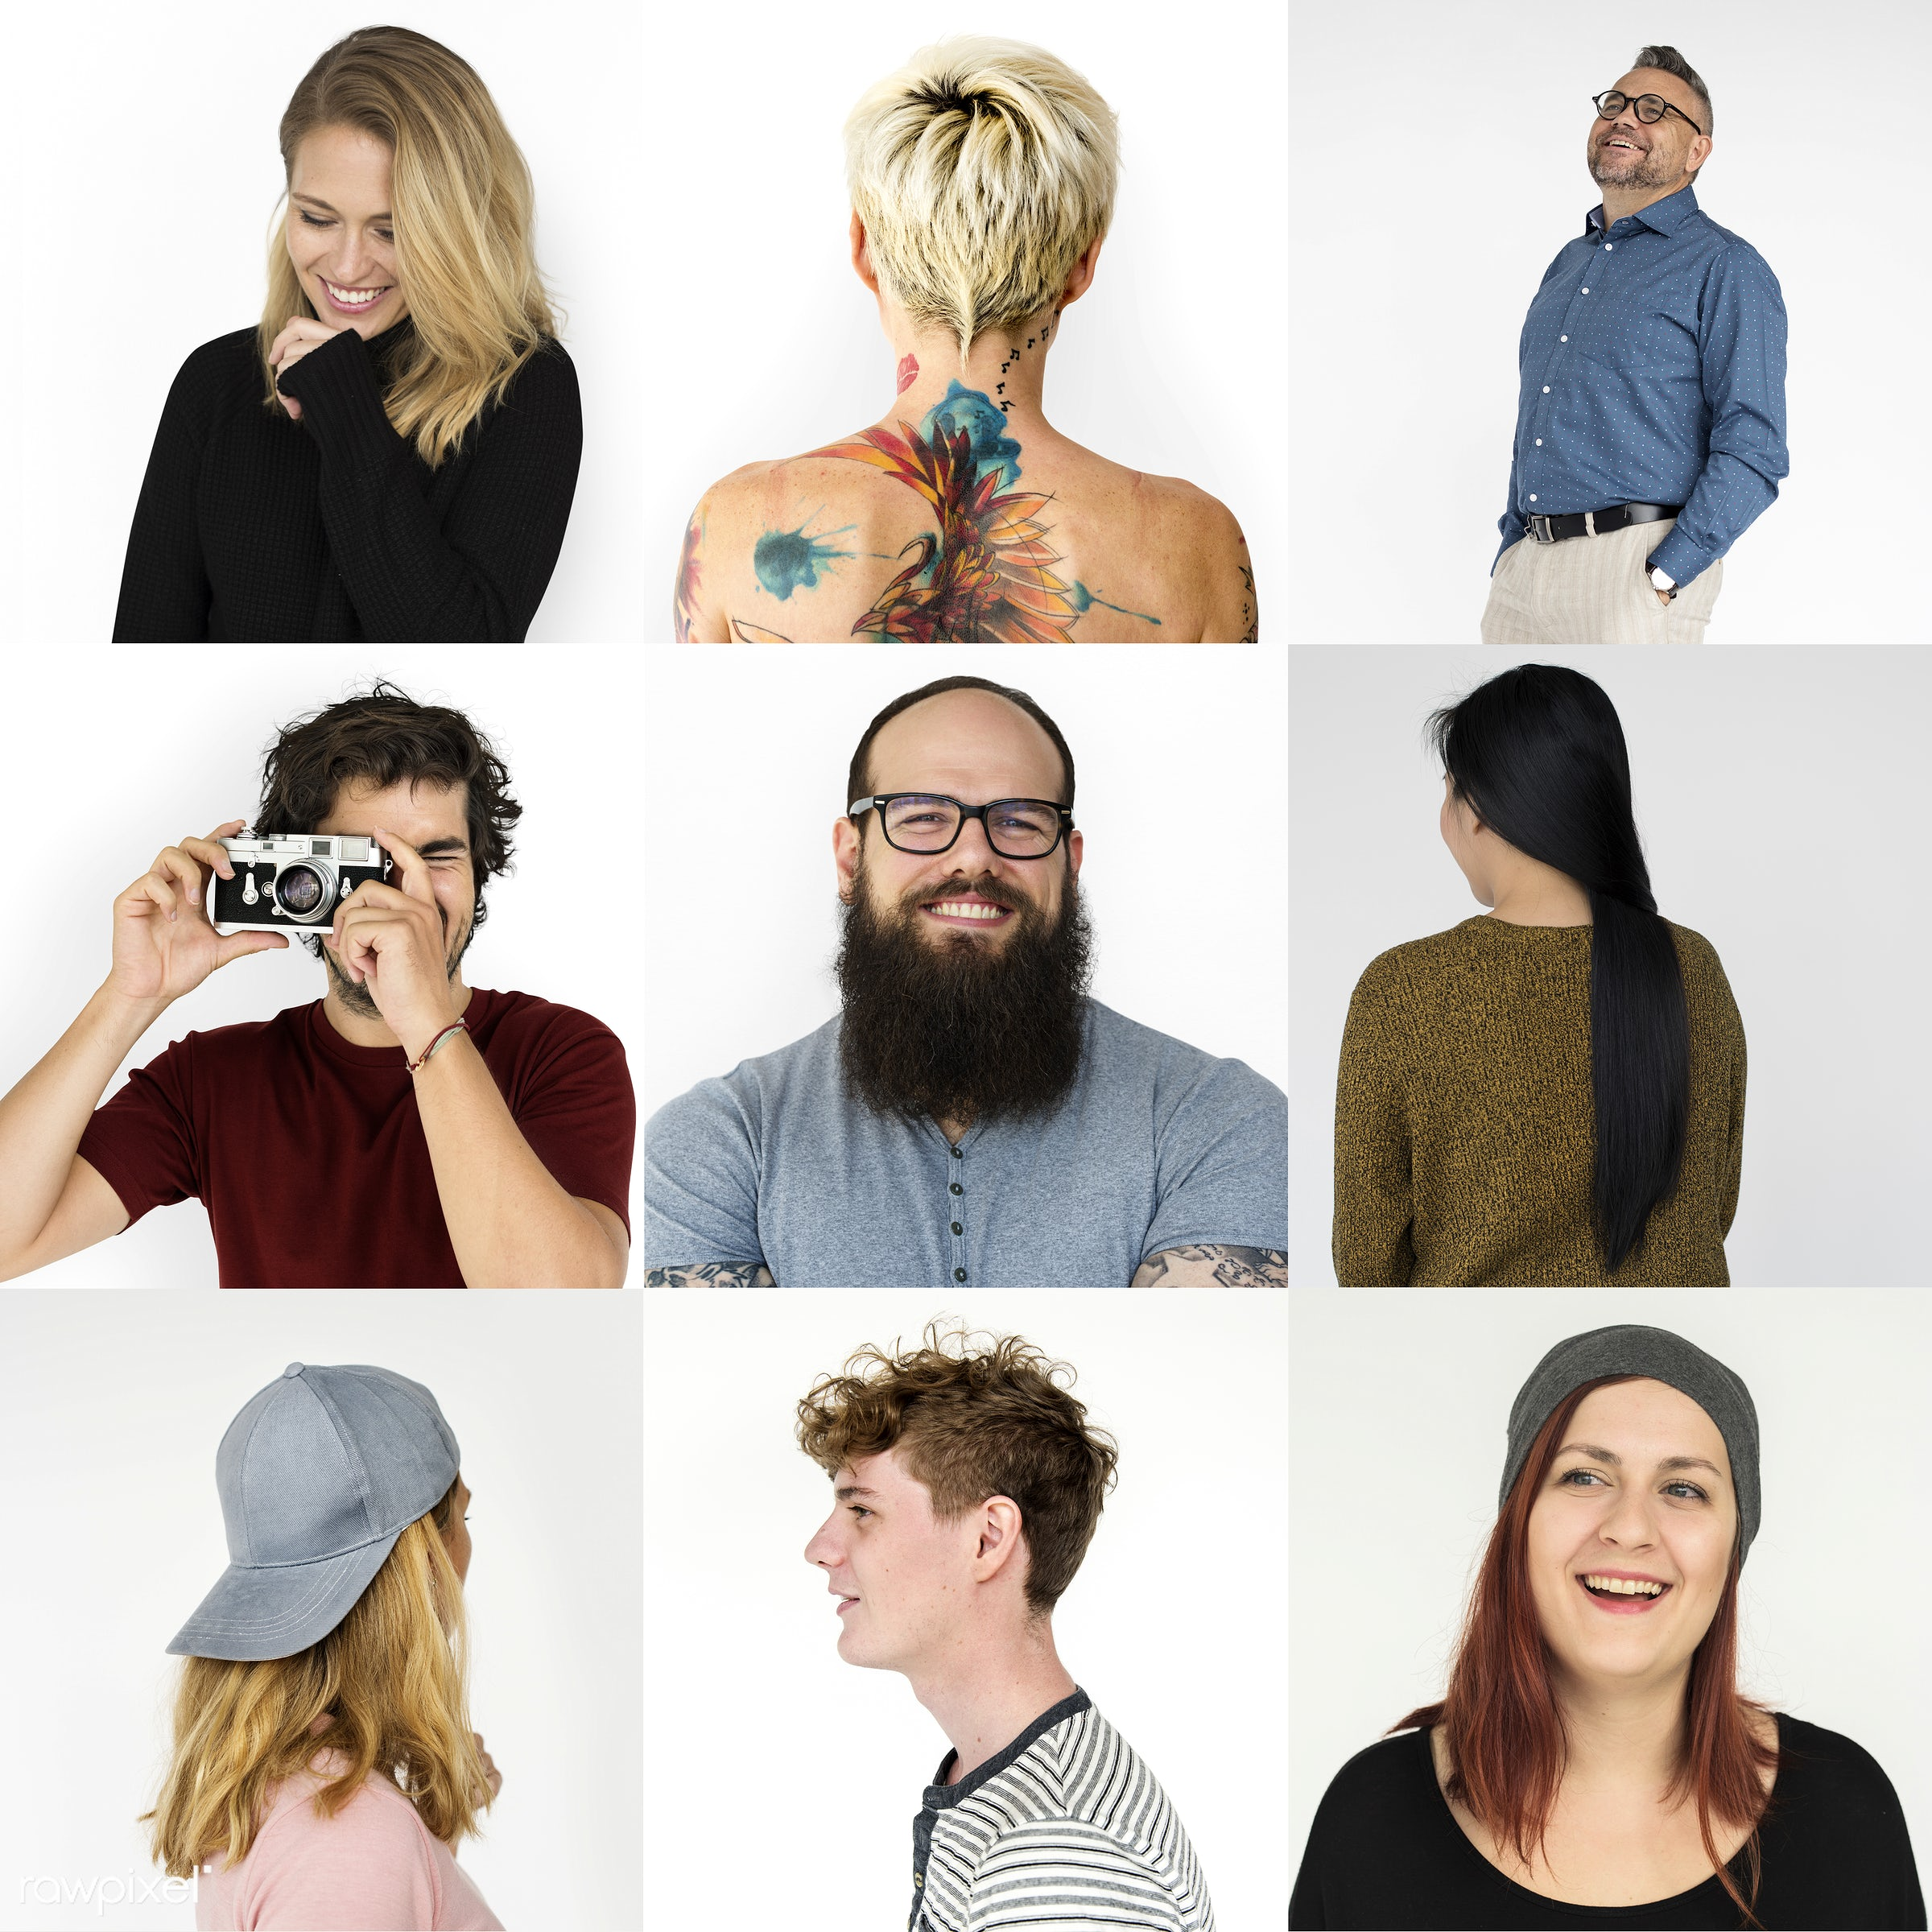 studio, interests, diverse, collages, people, habits, conduct, life, style, woman, lifestyle, casual, passion, isolated,...